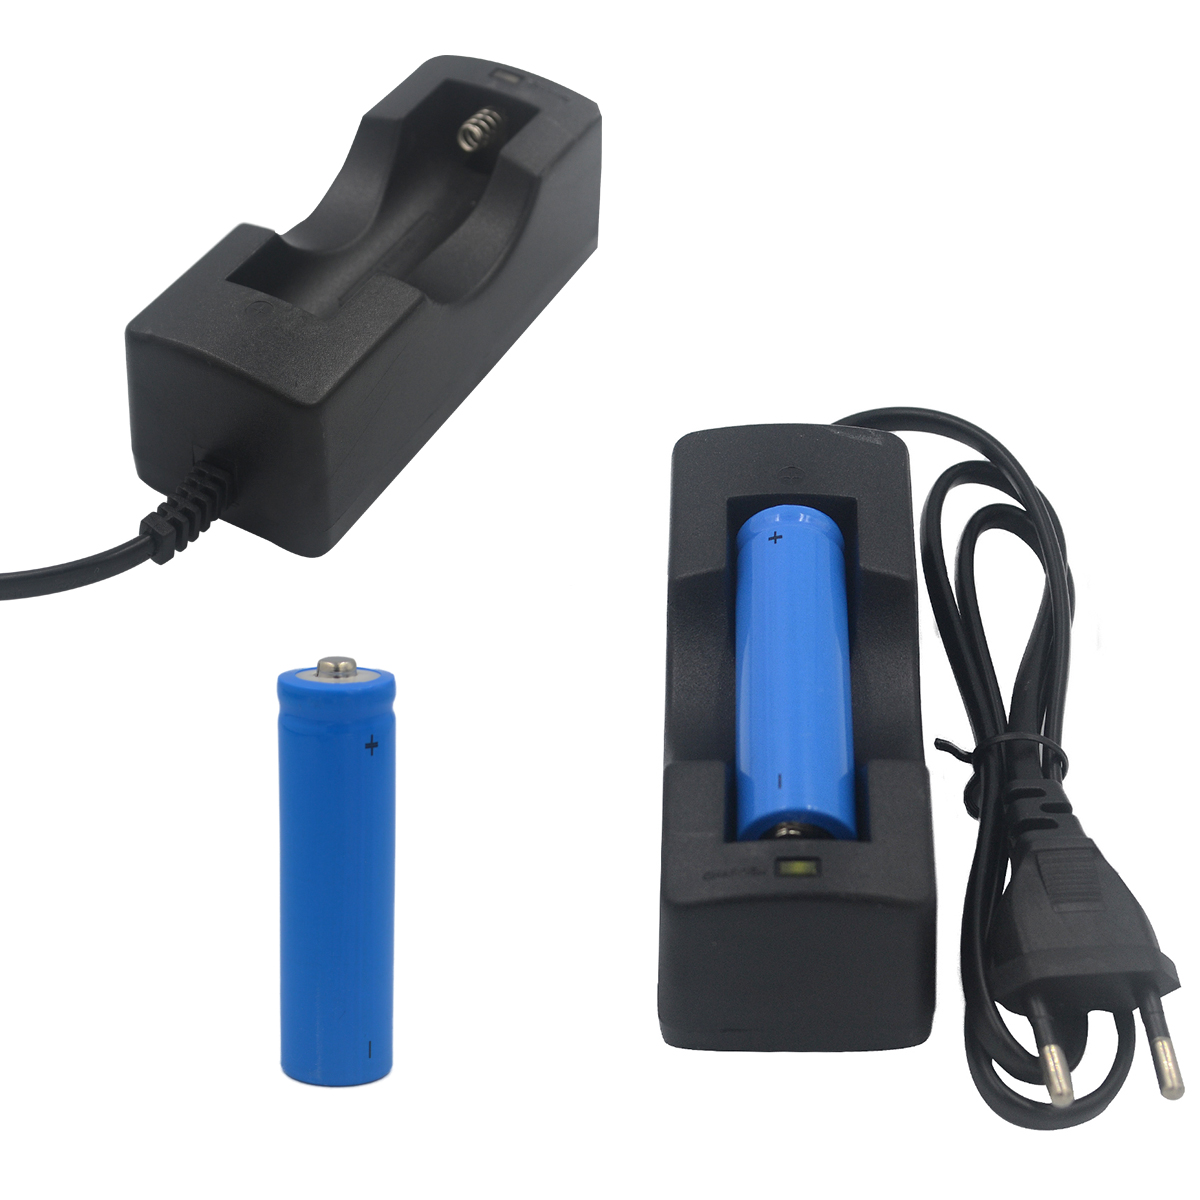 JIguoor 18650 3000mAh 3.7V EU Charger For Flashlight(Not Include) The Battery